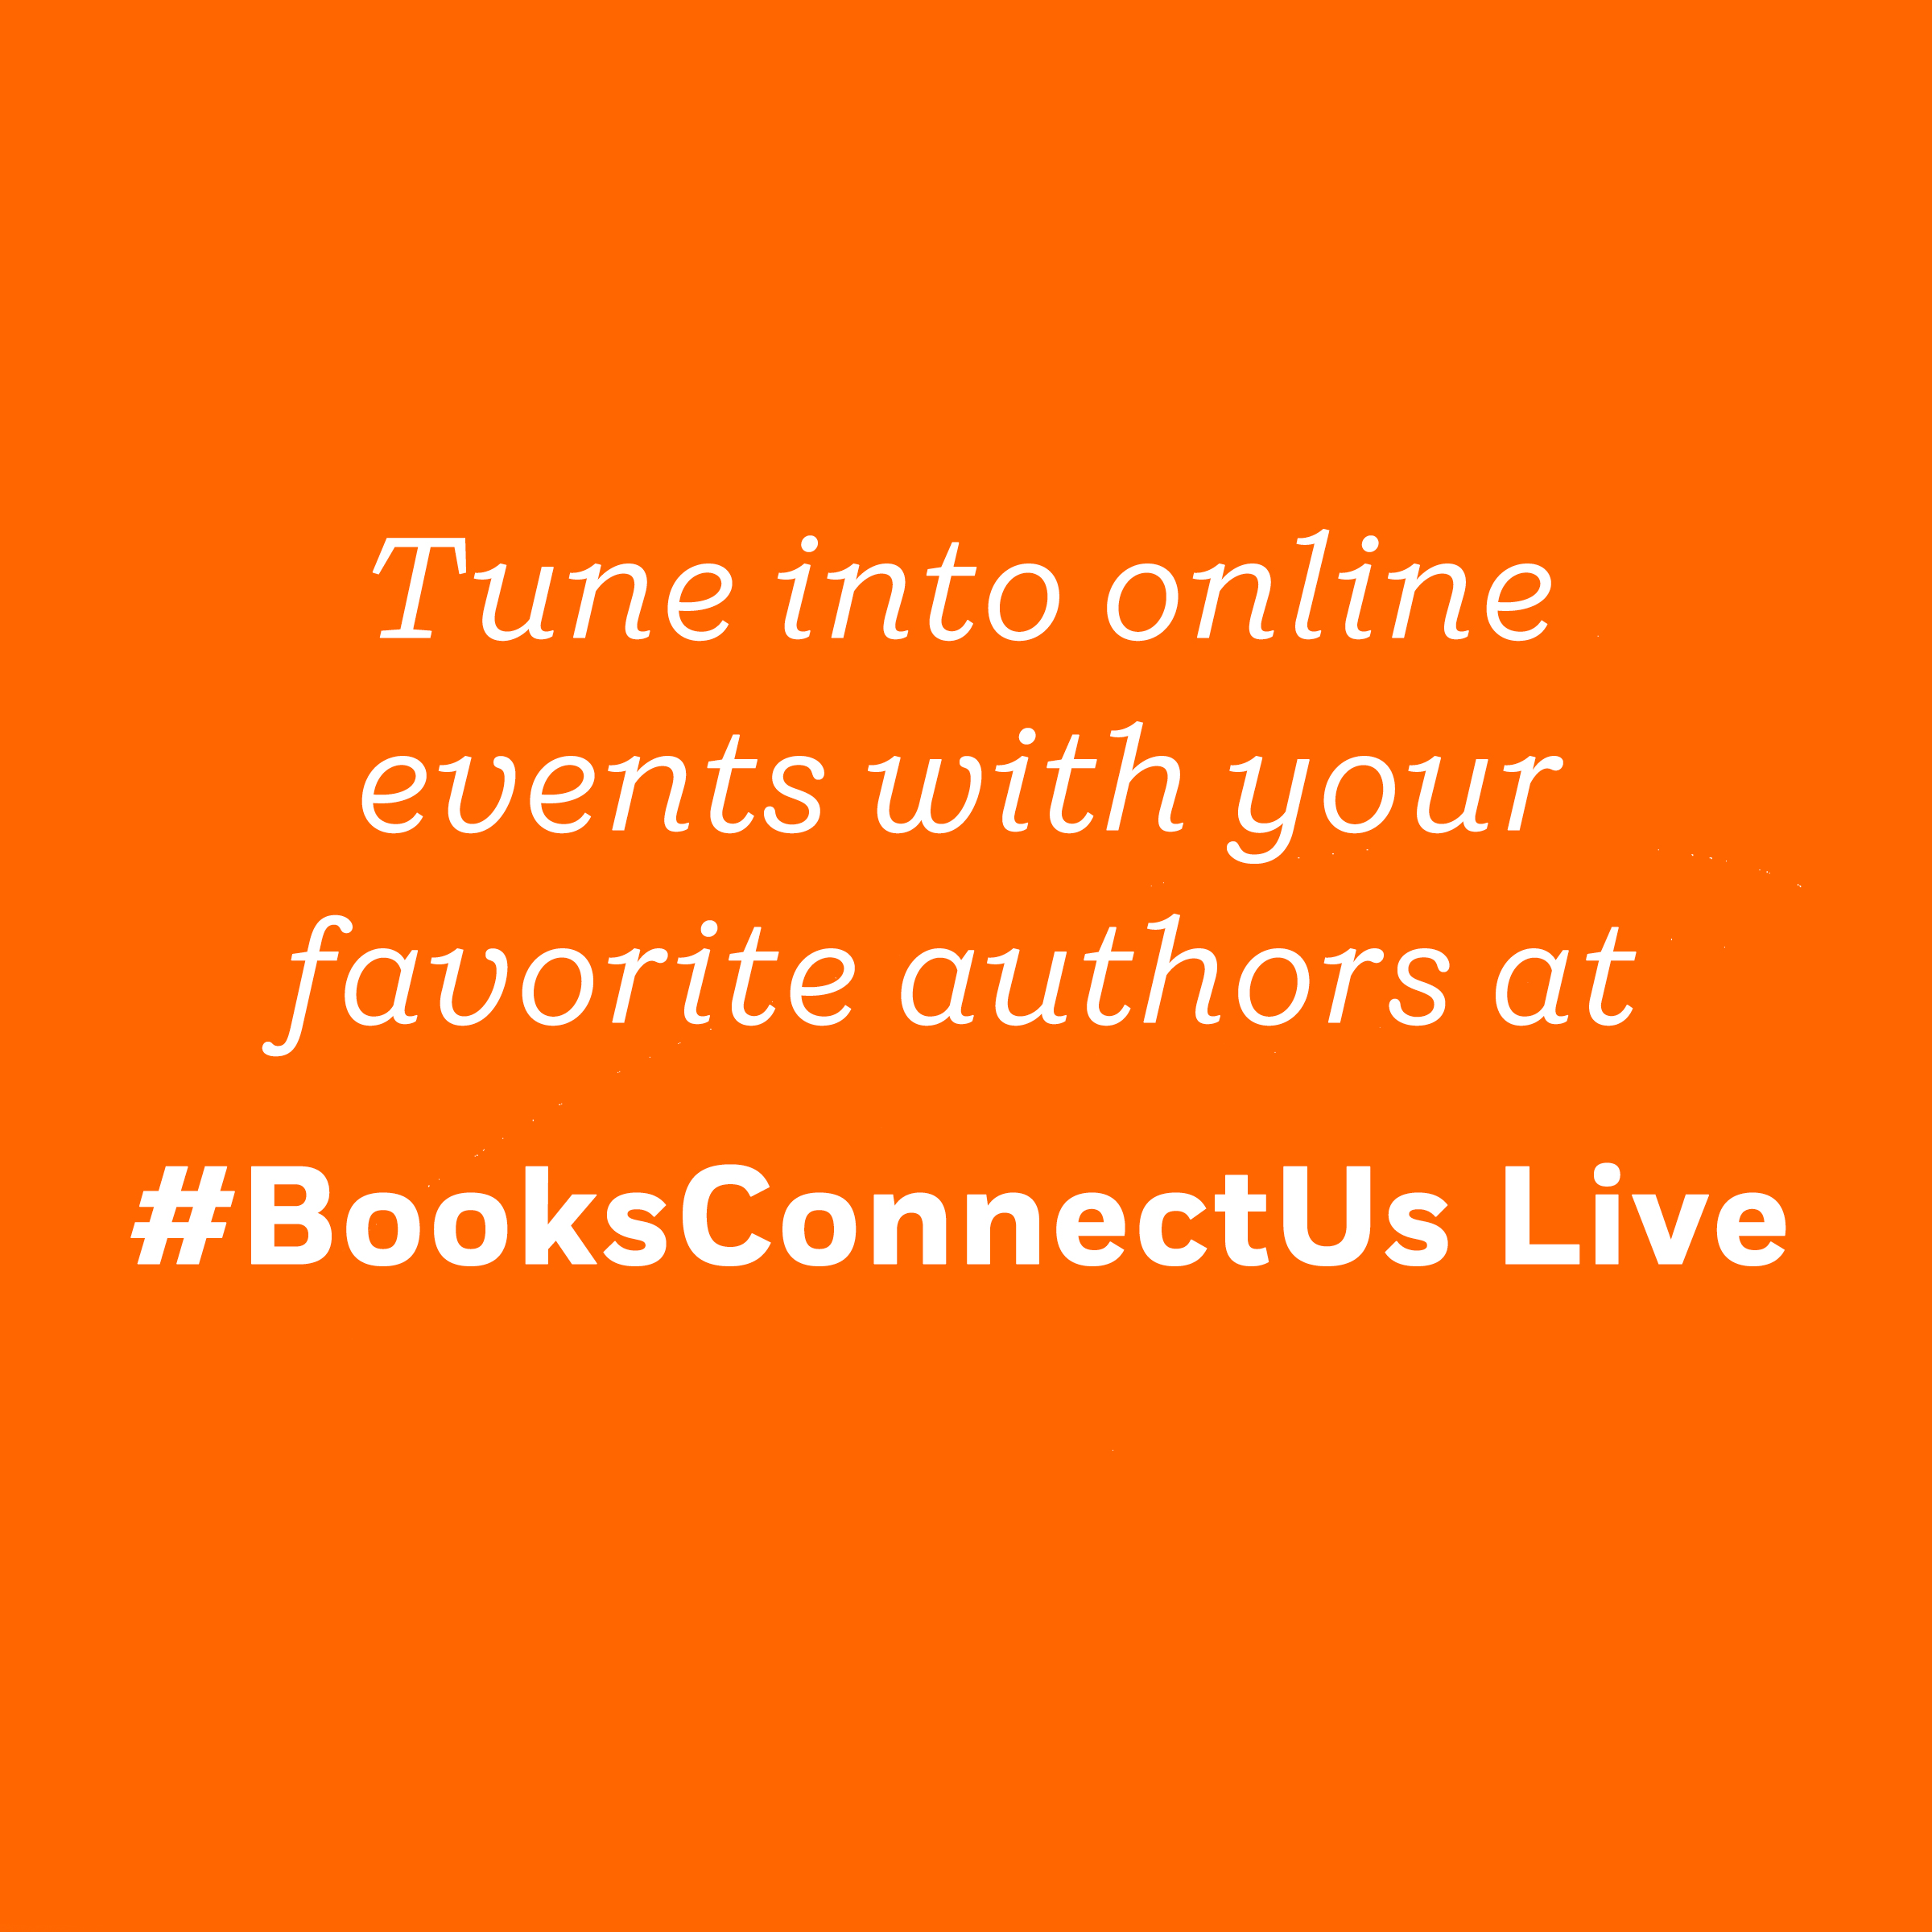 Books Connect Us